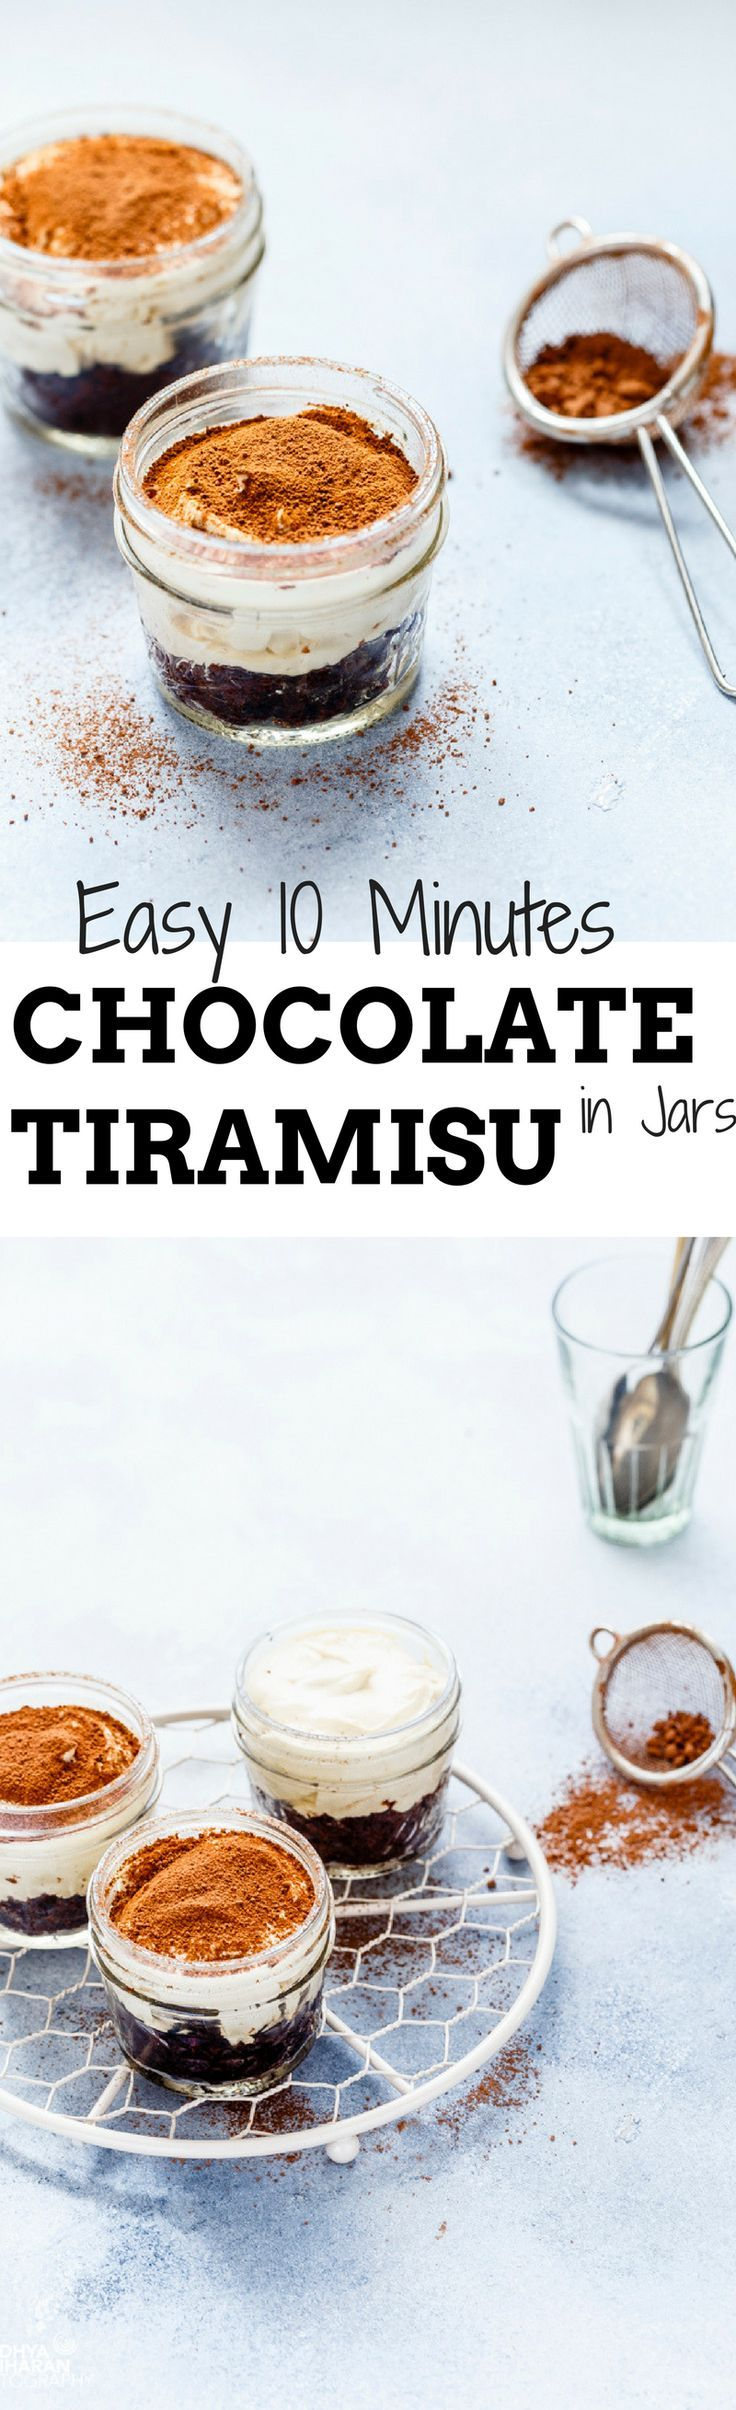 This super easy Eggless 10 minutes Chocolate Tiramisu in Jars recipe can be put together in a jiffy. Perfect for Large Parties/ Gatherings!!